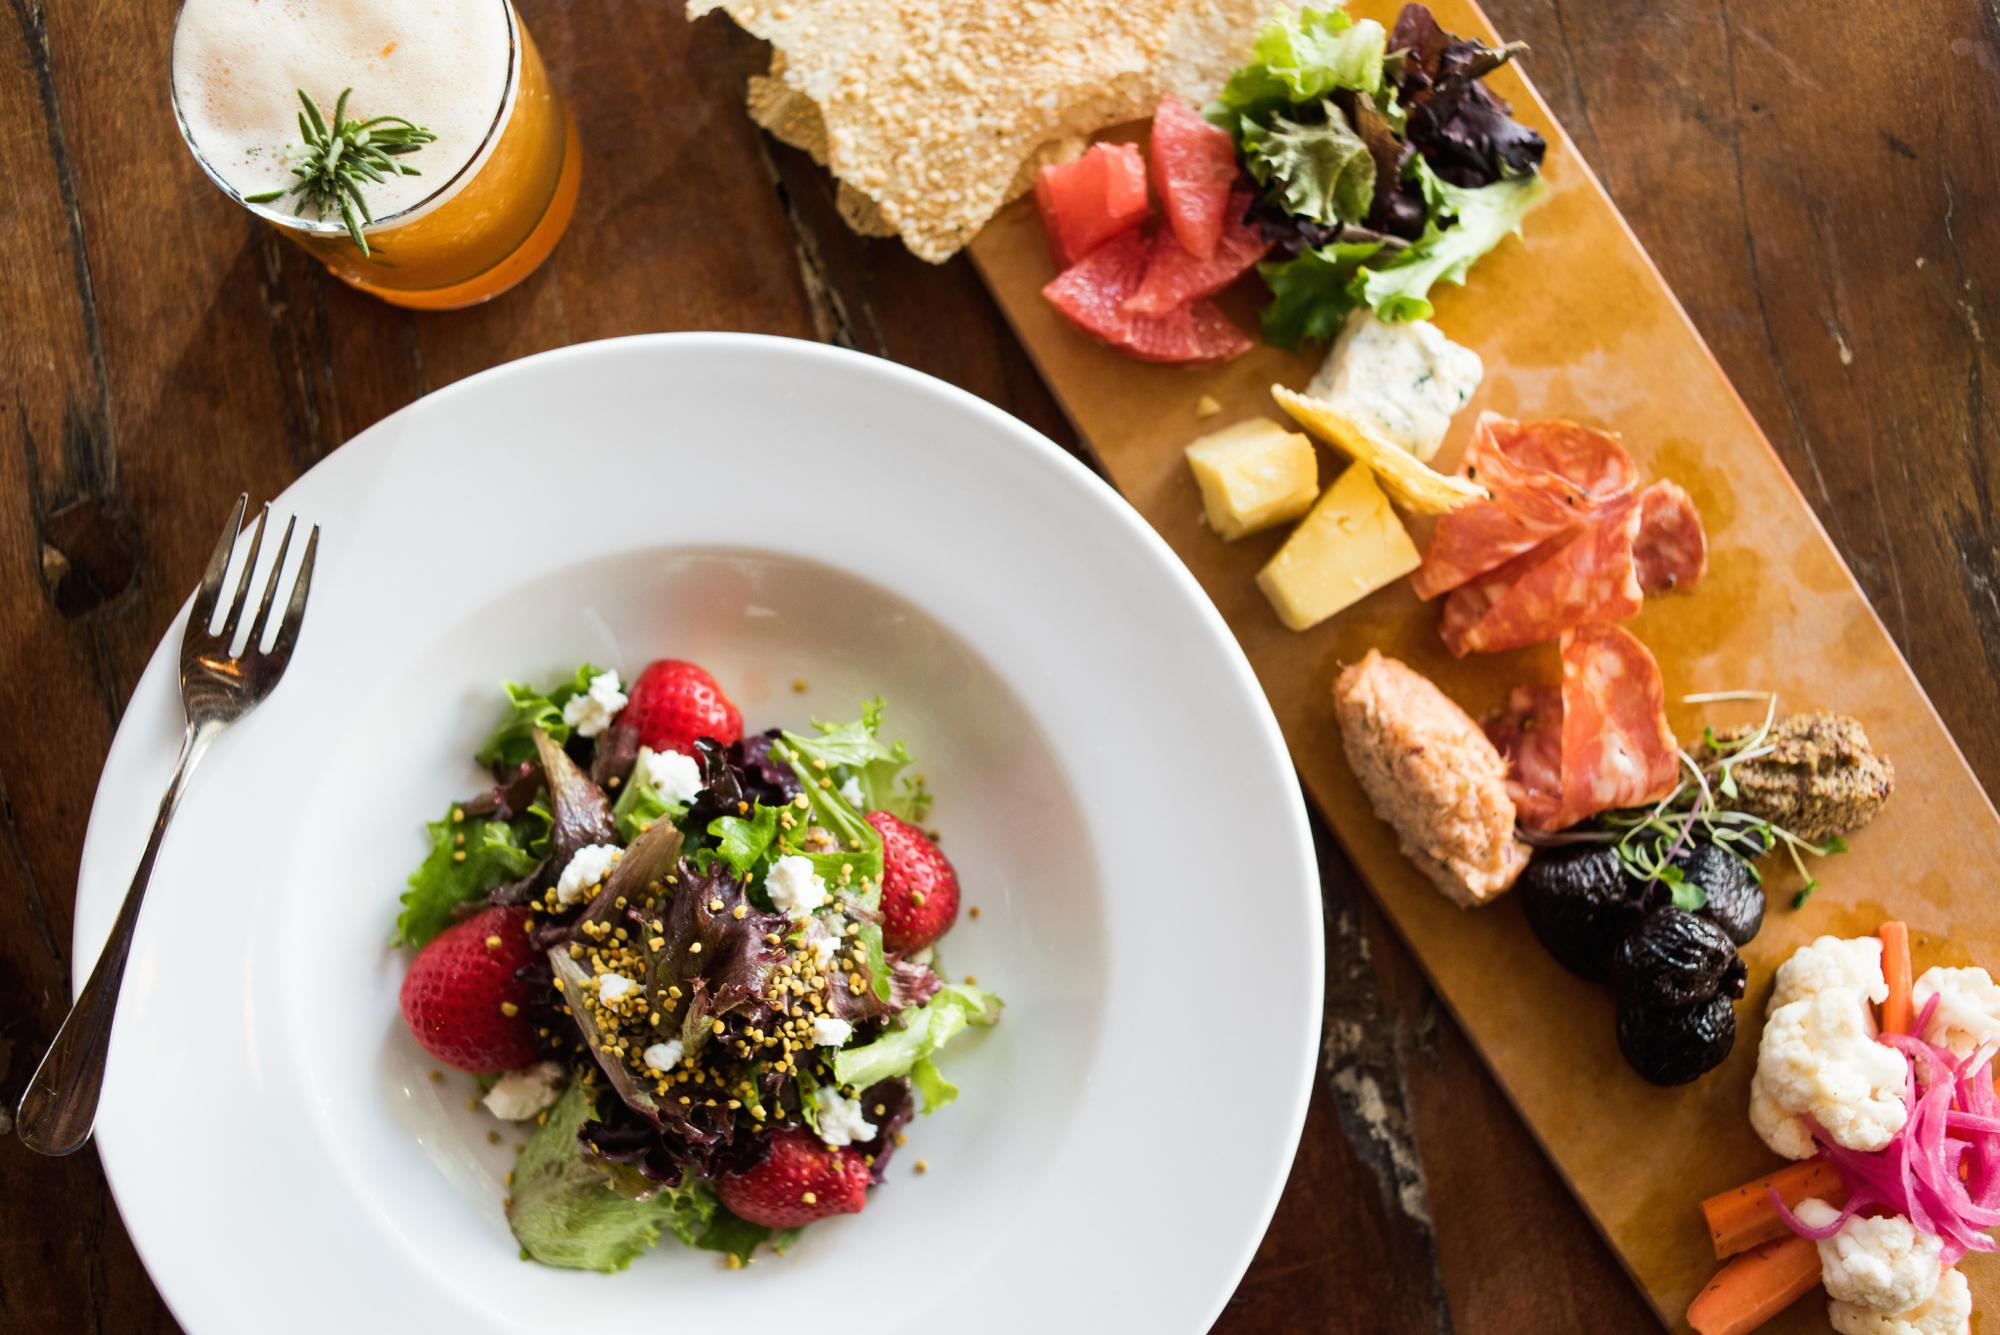 Proper's upscale menu features fresh food, often from local and regional sources.